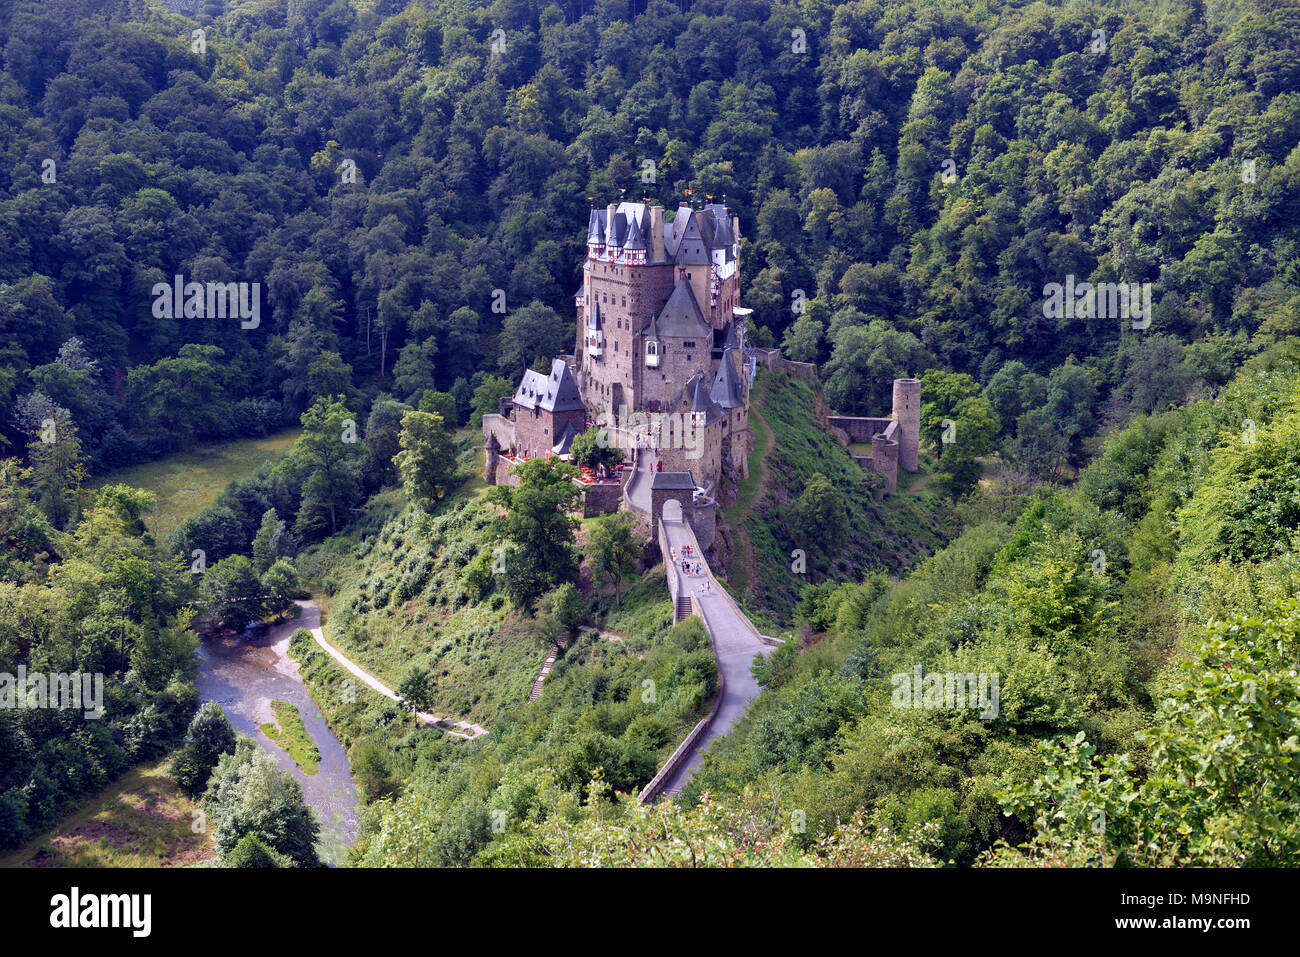 Eltz Castle from the northeast side with the Eltz Forest in the background. Koblenz, Germany. - Stock Image